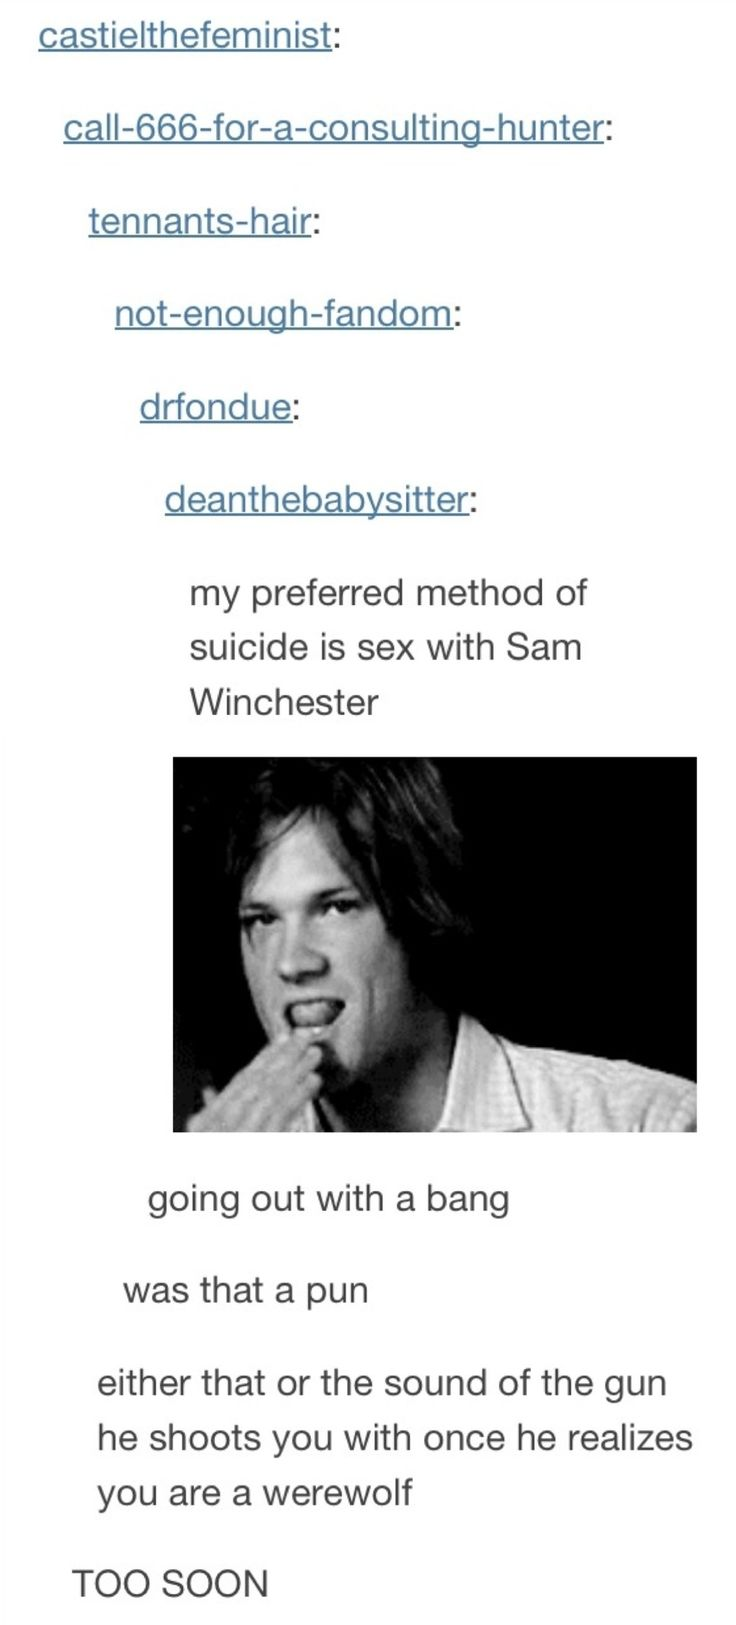 My preferred method if suicide is sex with Sam Winchester